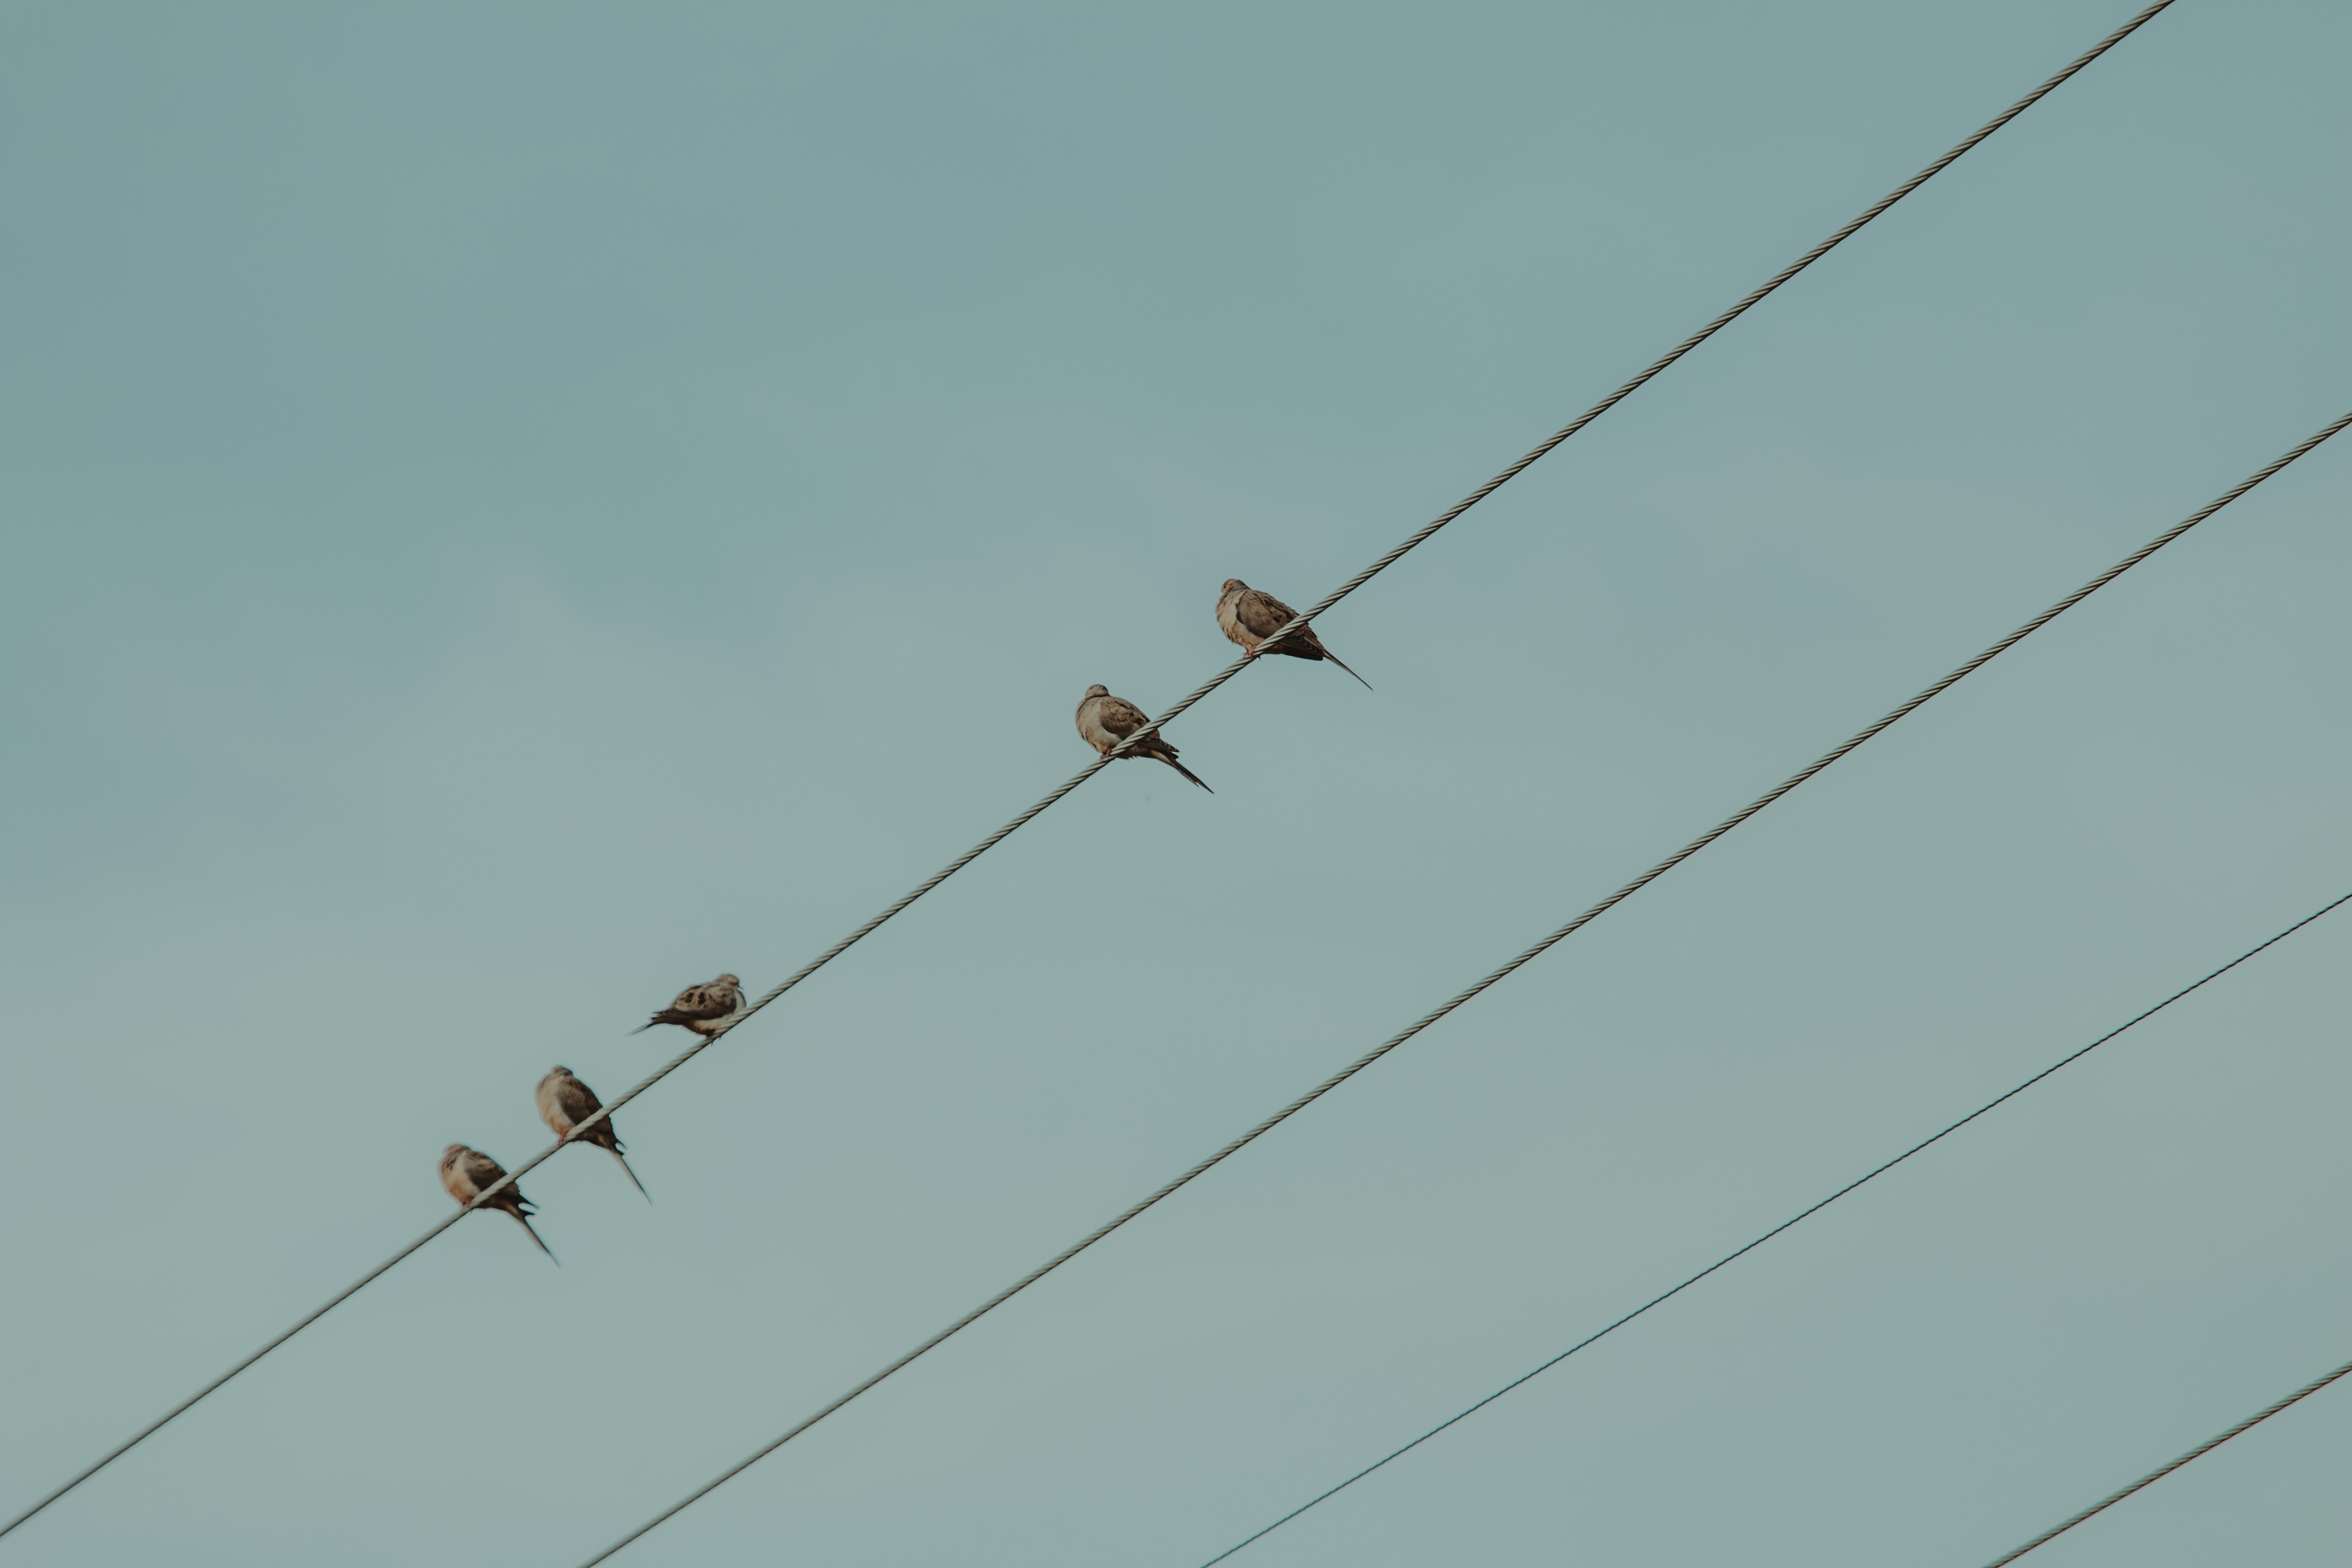 five brown birds on cable under blue sky